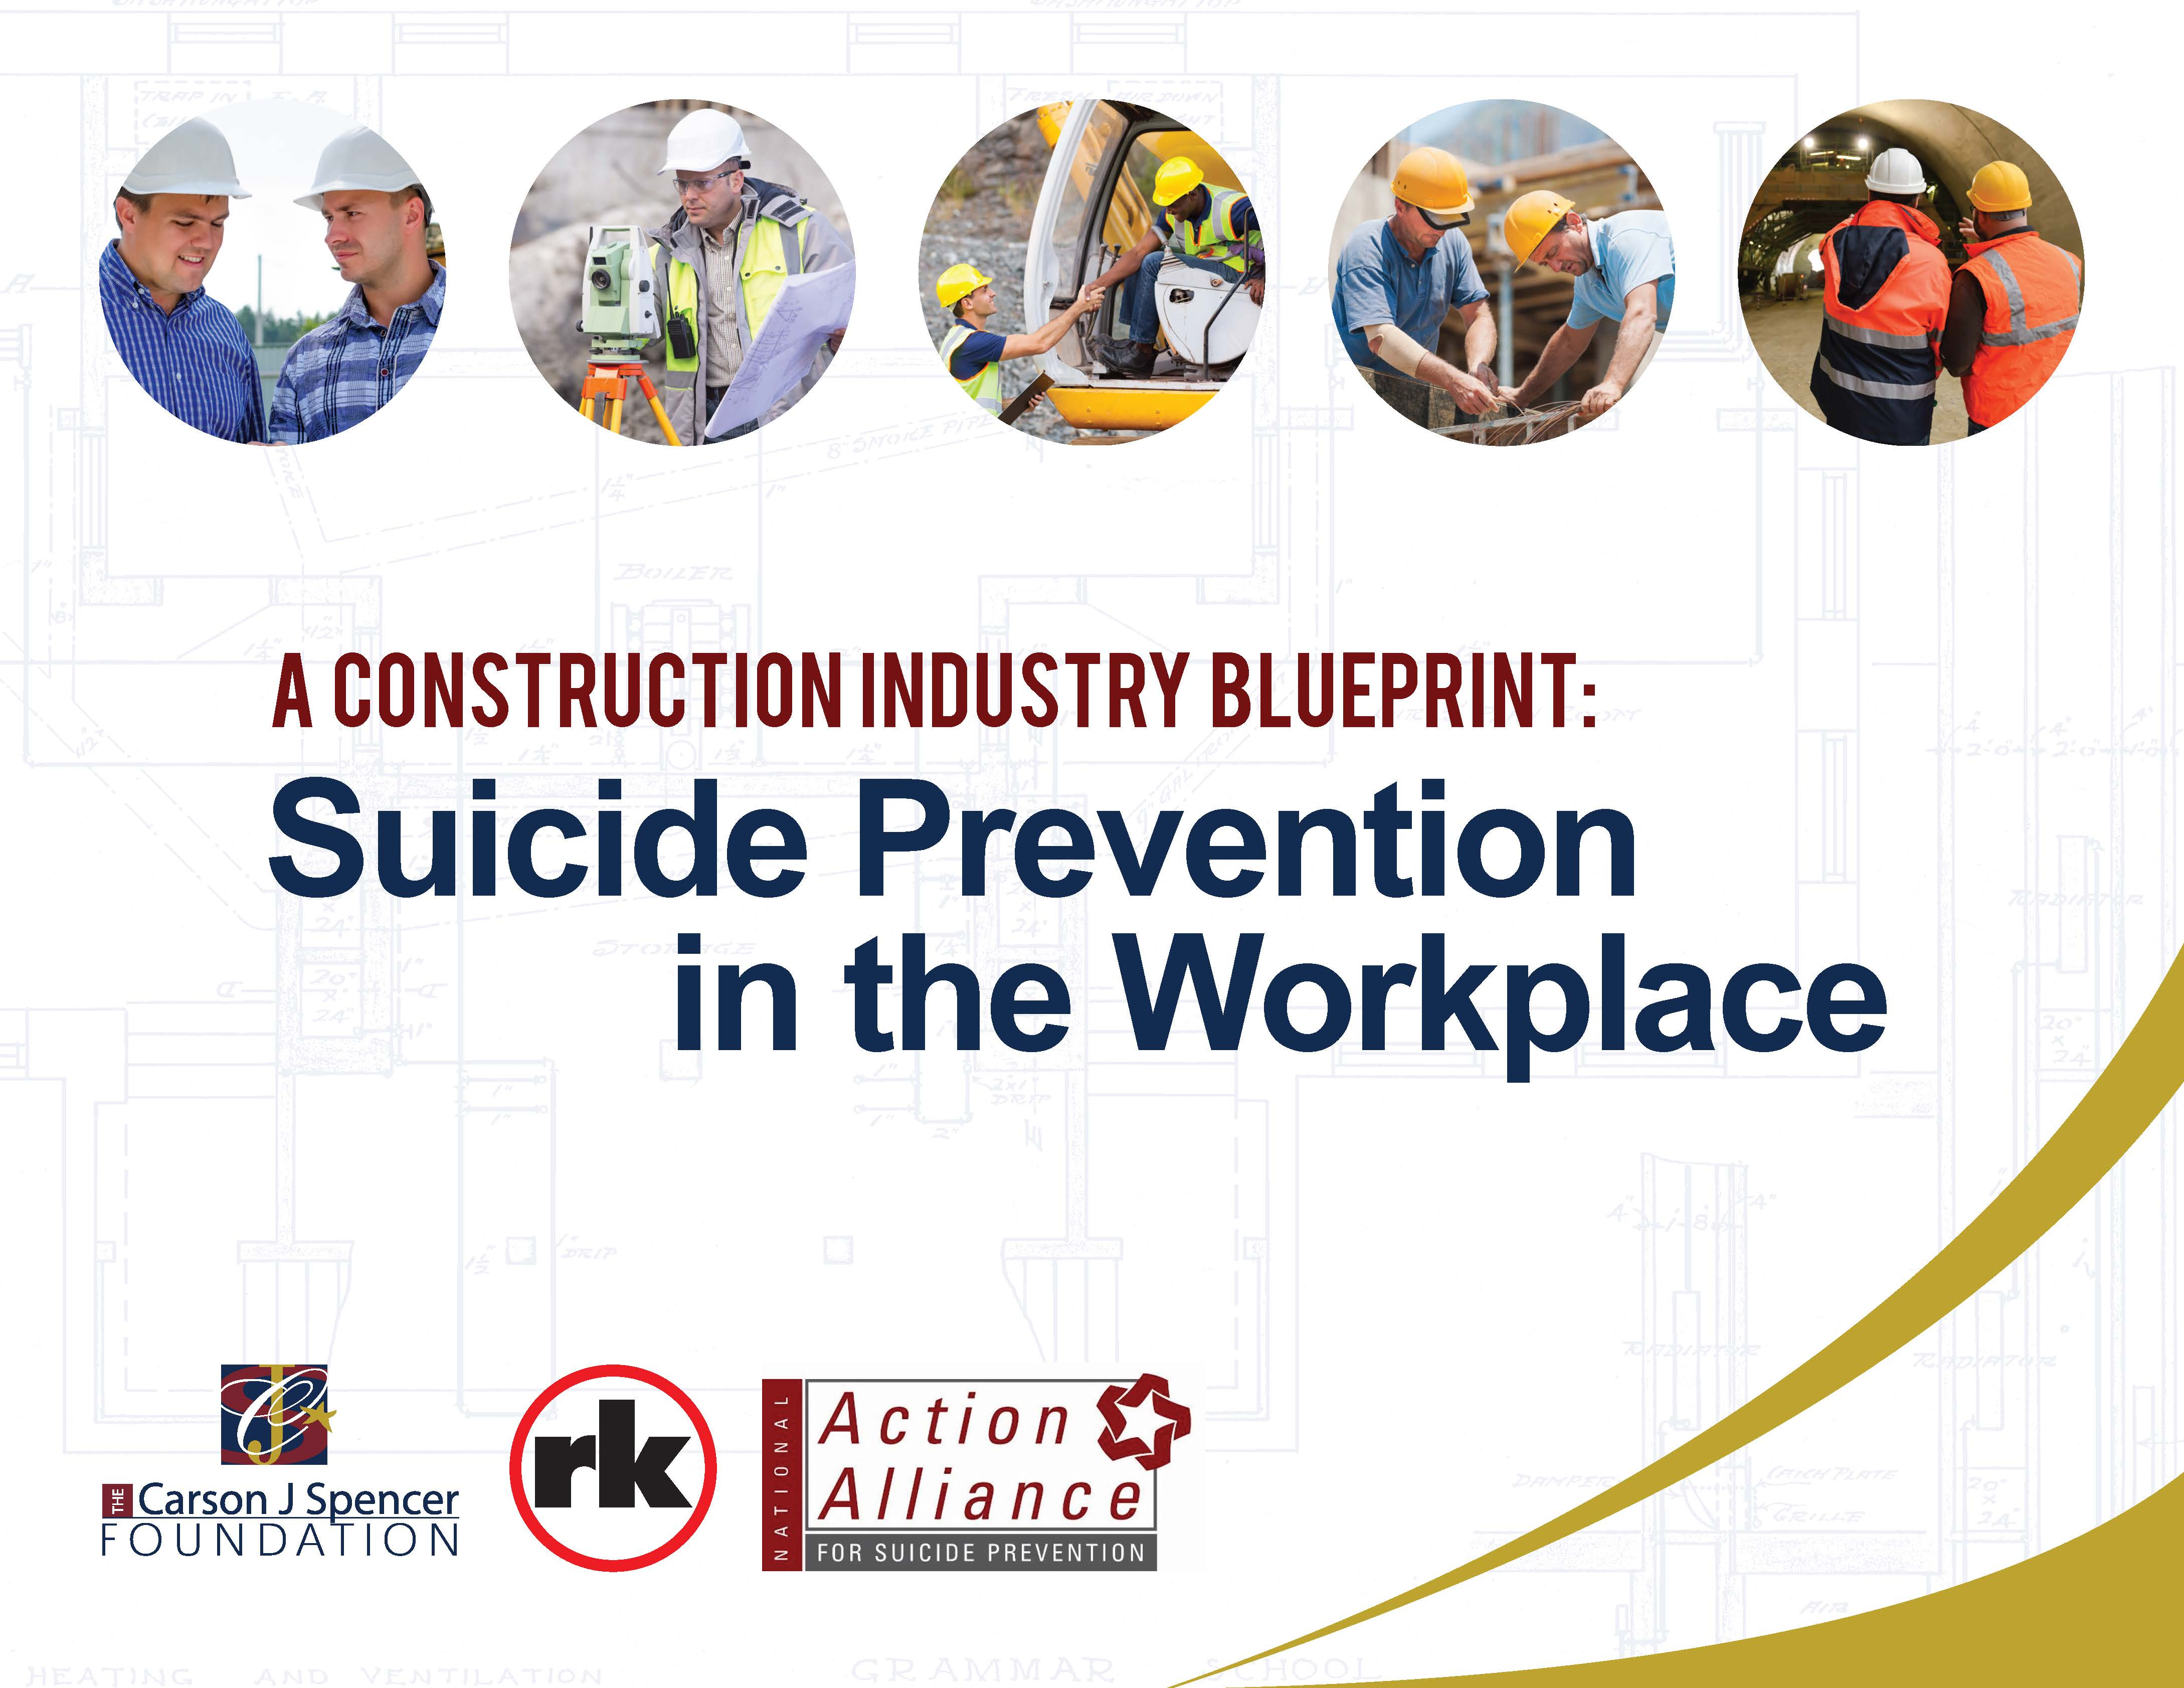 A Construction Industry Blueprint: Suicide Prevention in the Workplace